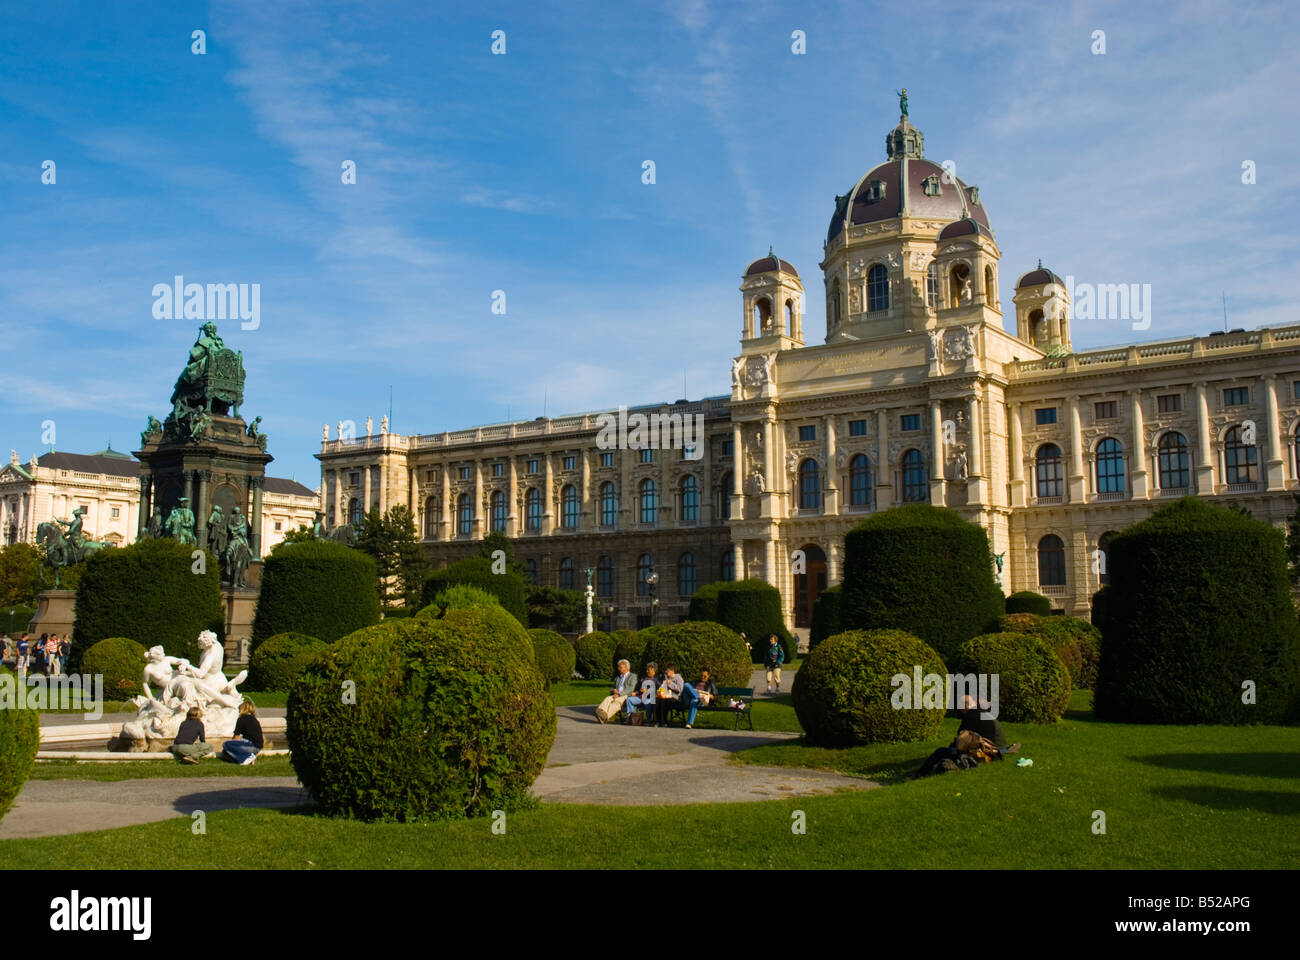 Maria Theresien Platz garden in front of Kunsthistoriches Museum art museum in central Vienna Austria Europe Stock Photo